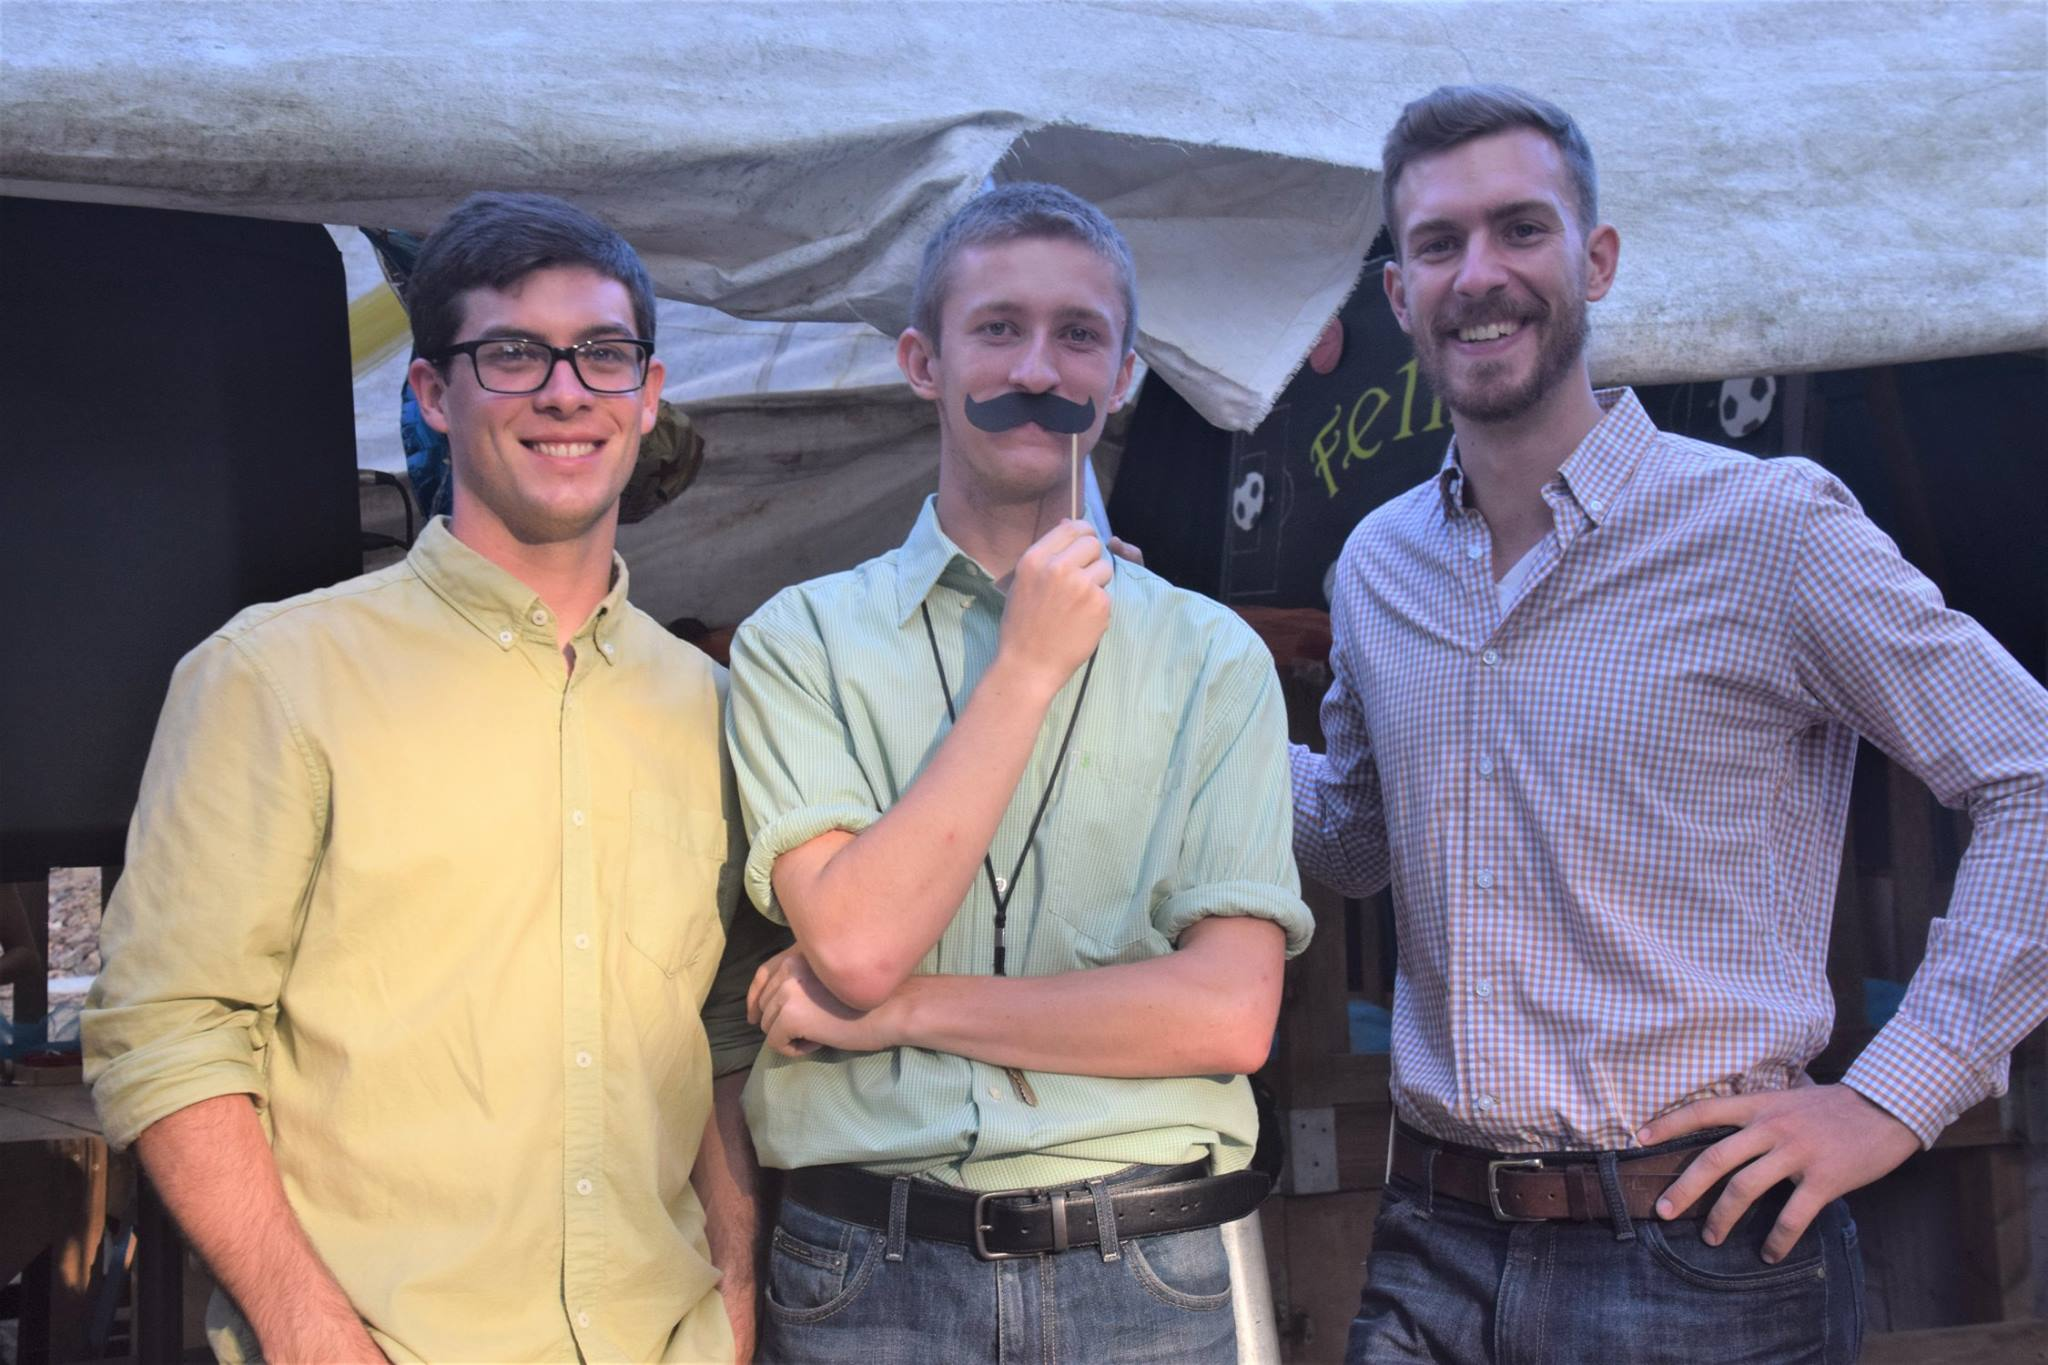 Clay with some of his fellow volunteers enjoying the Father's Day presentations at the school.